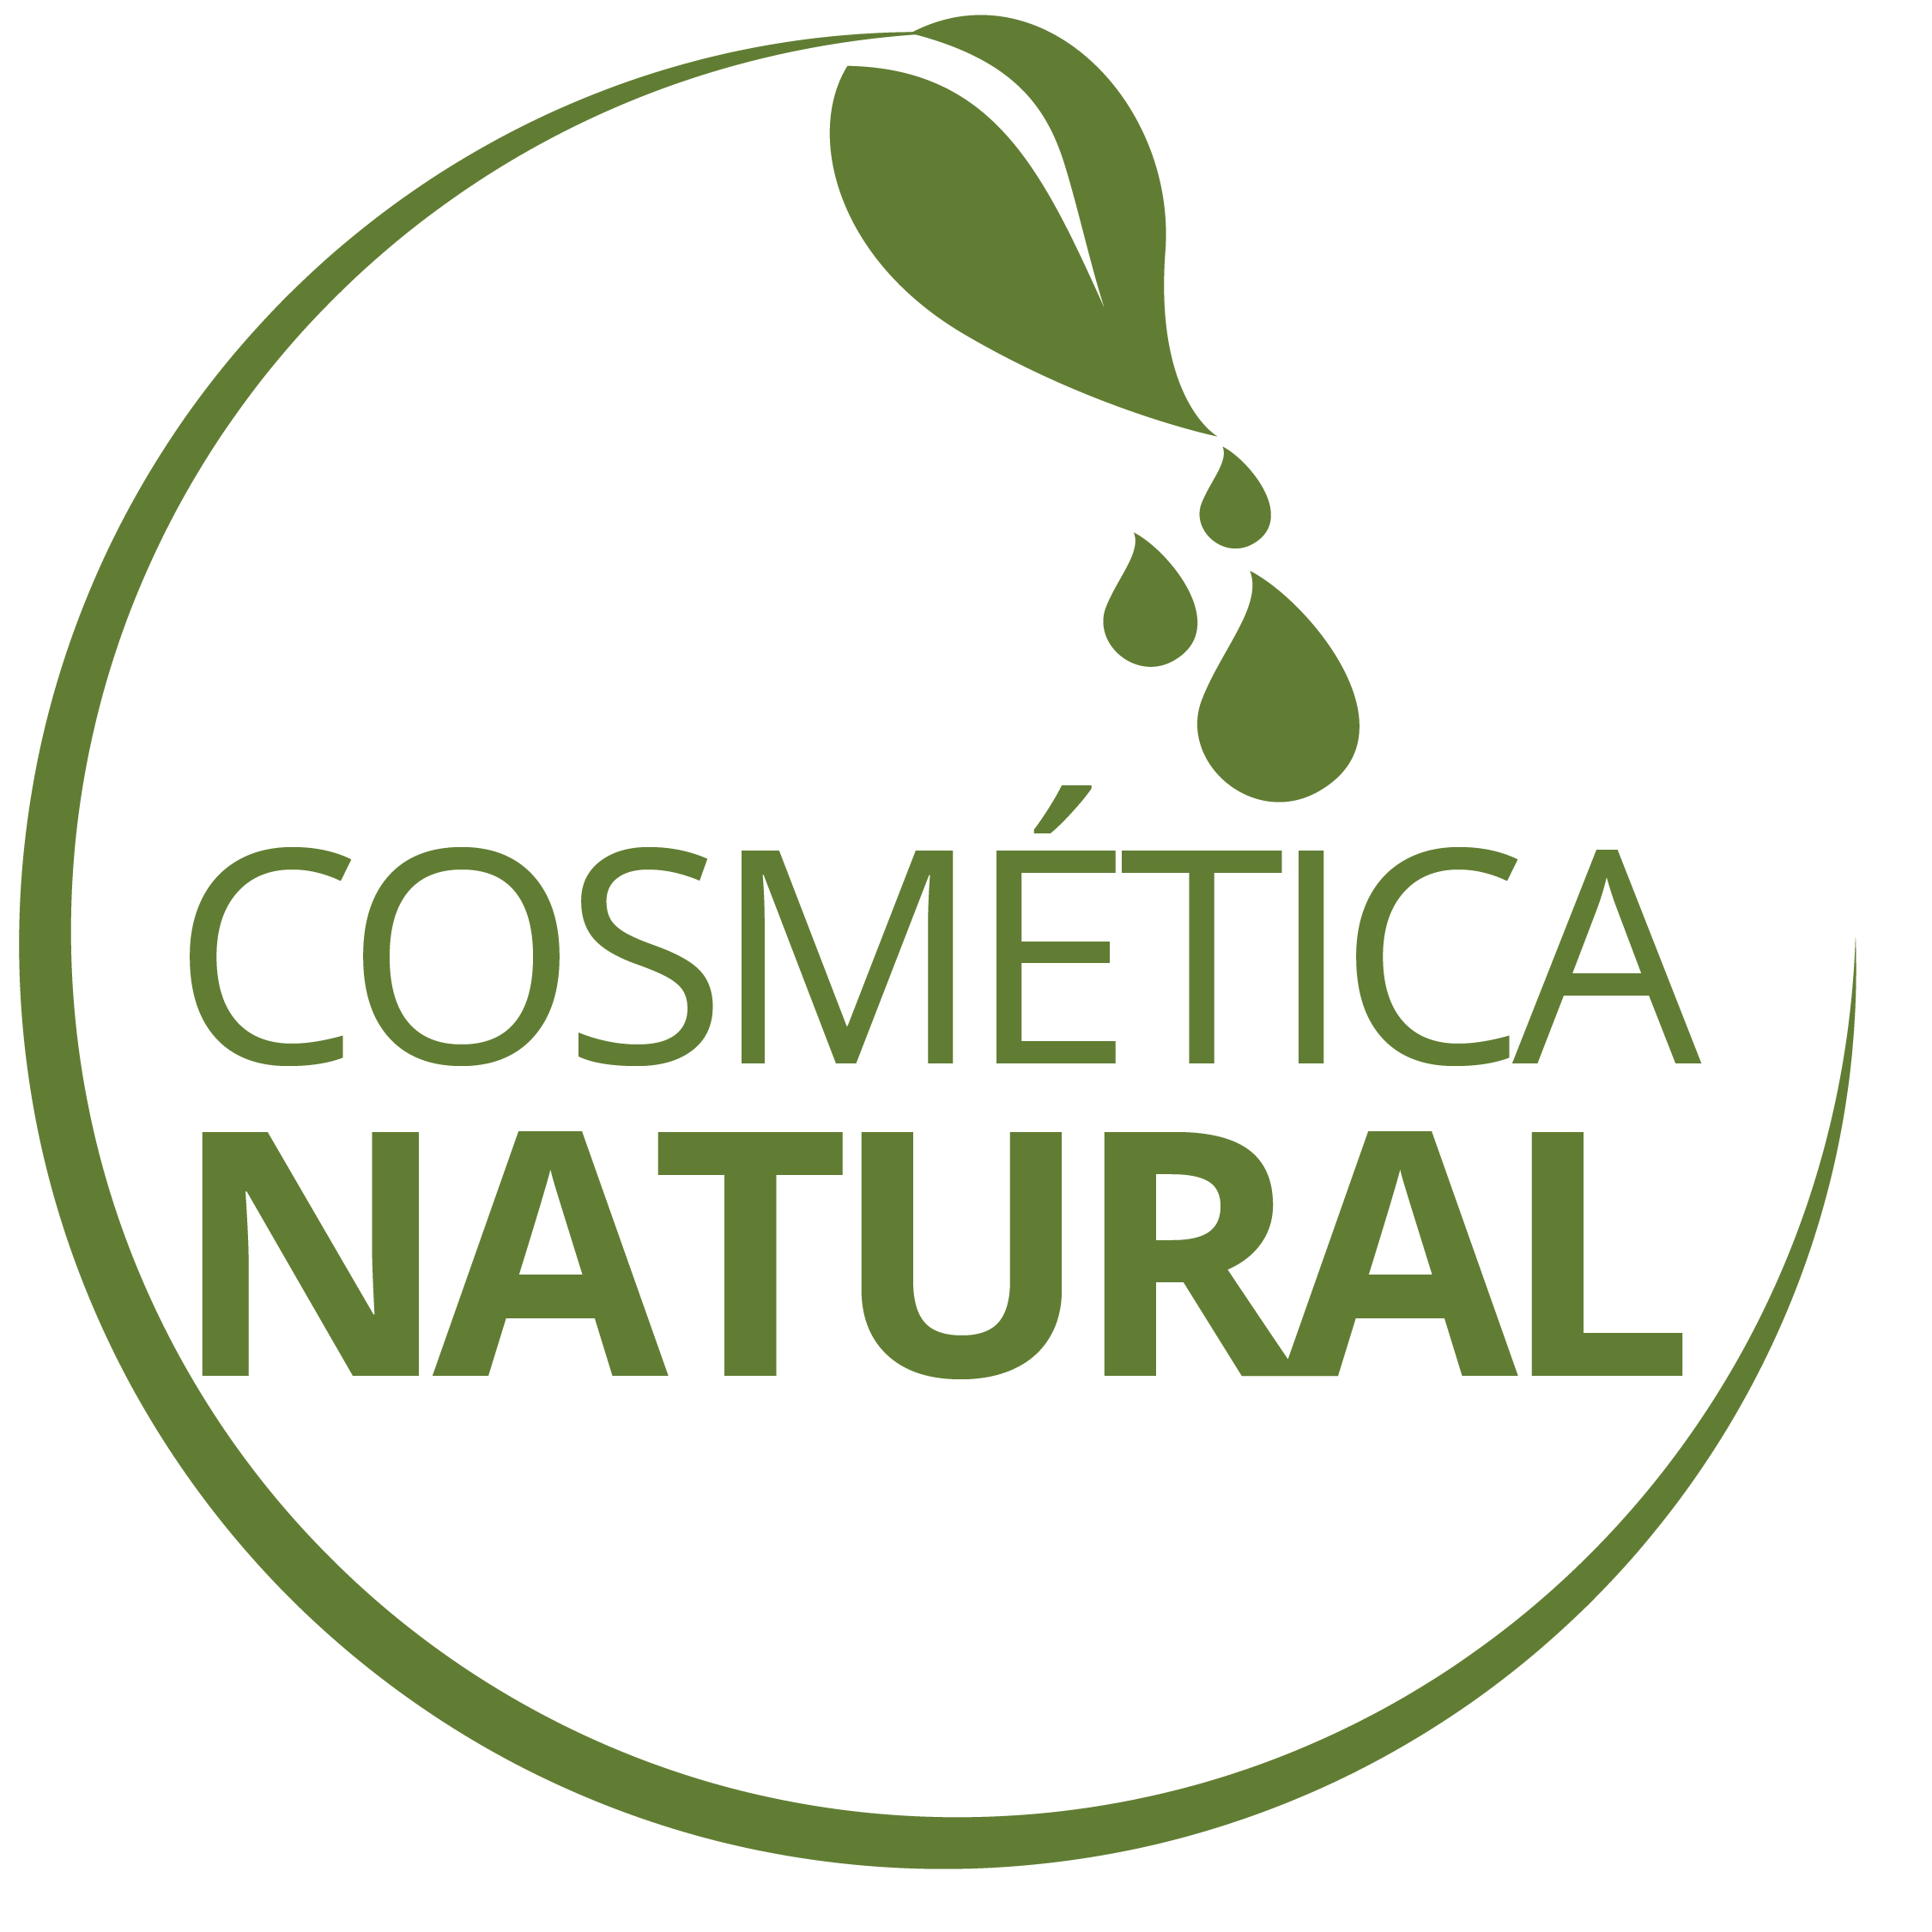 https://assets.jumpseller.com/store/naturel/themes/260180/options/32868832/22_sello_cosmetica-22-22.png?1610644607